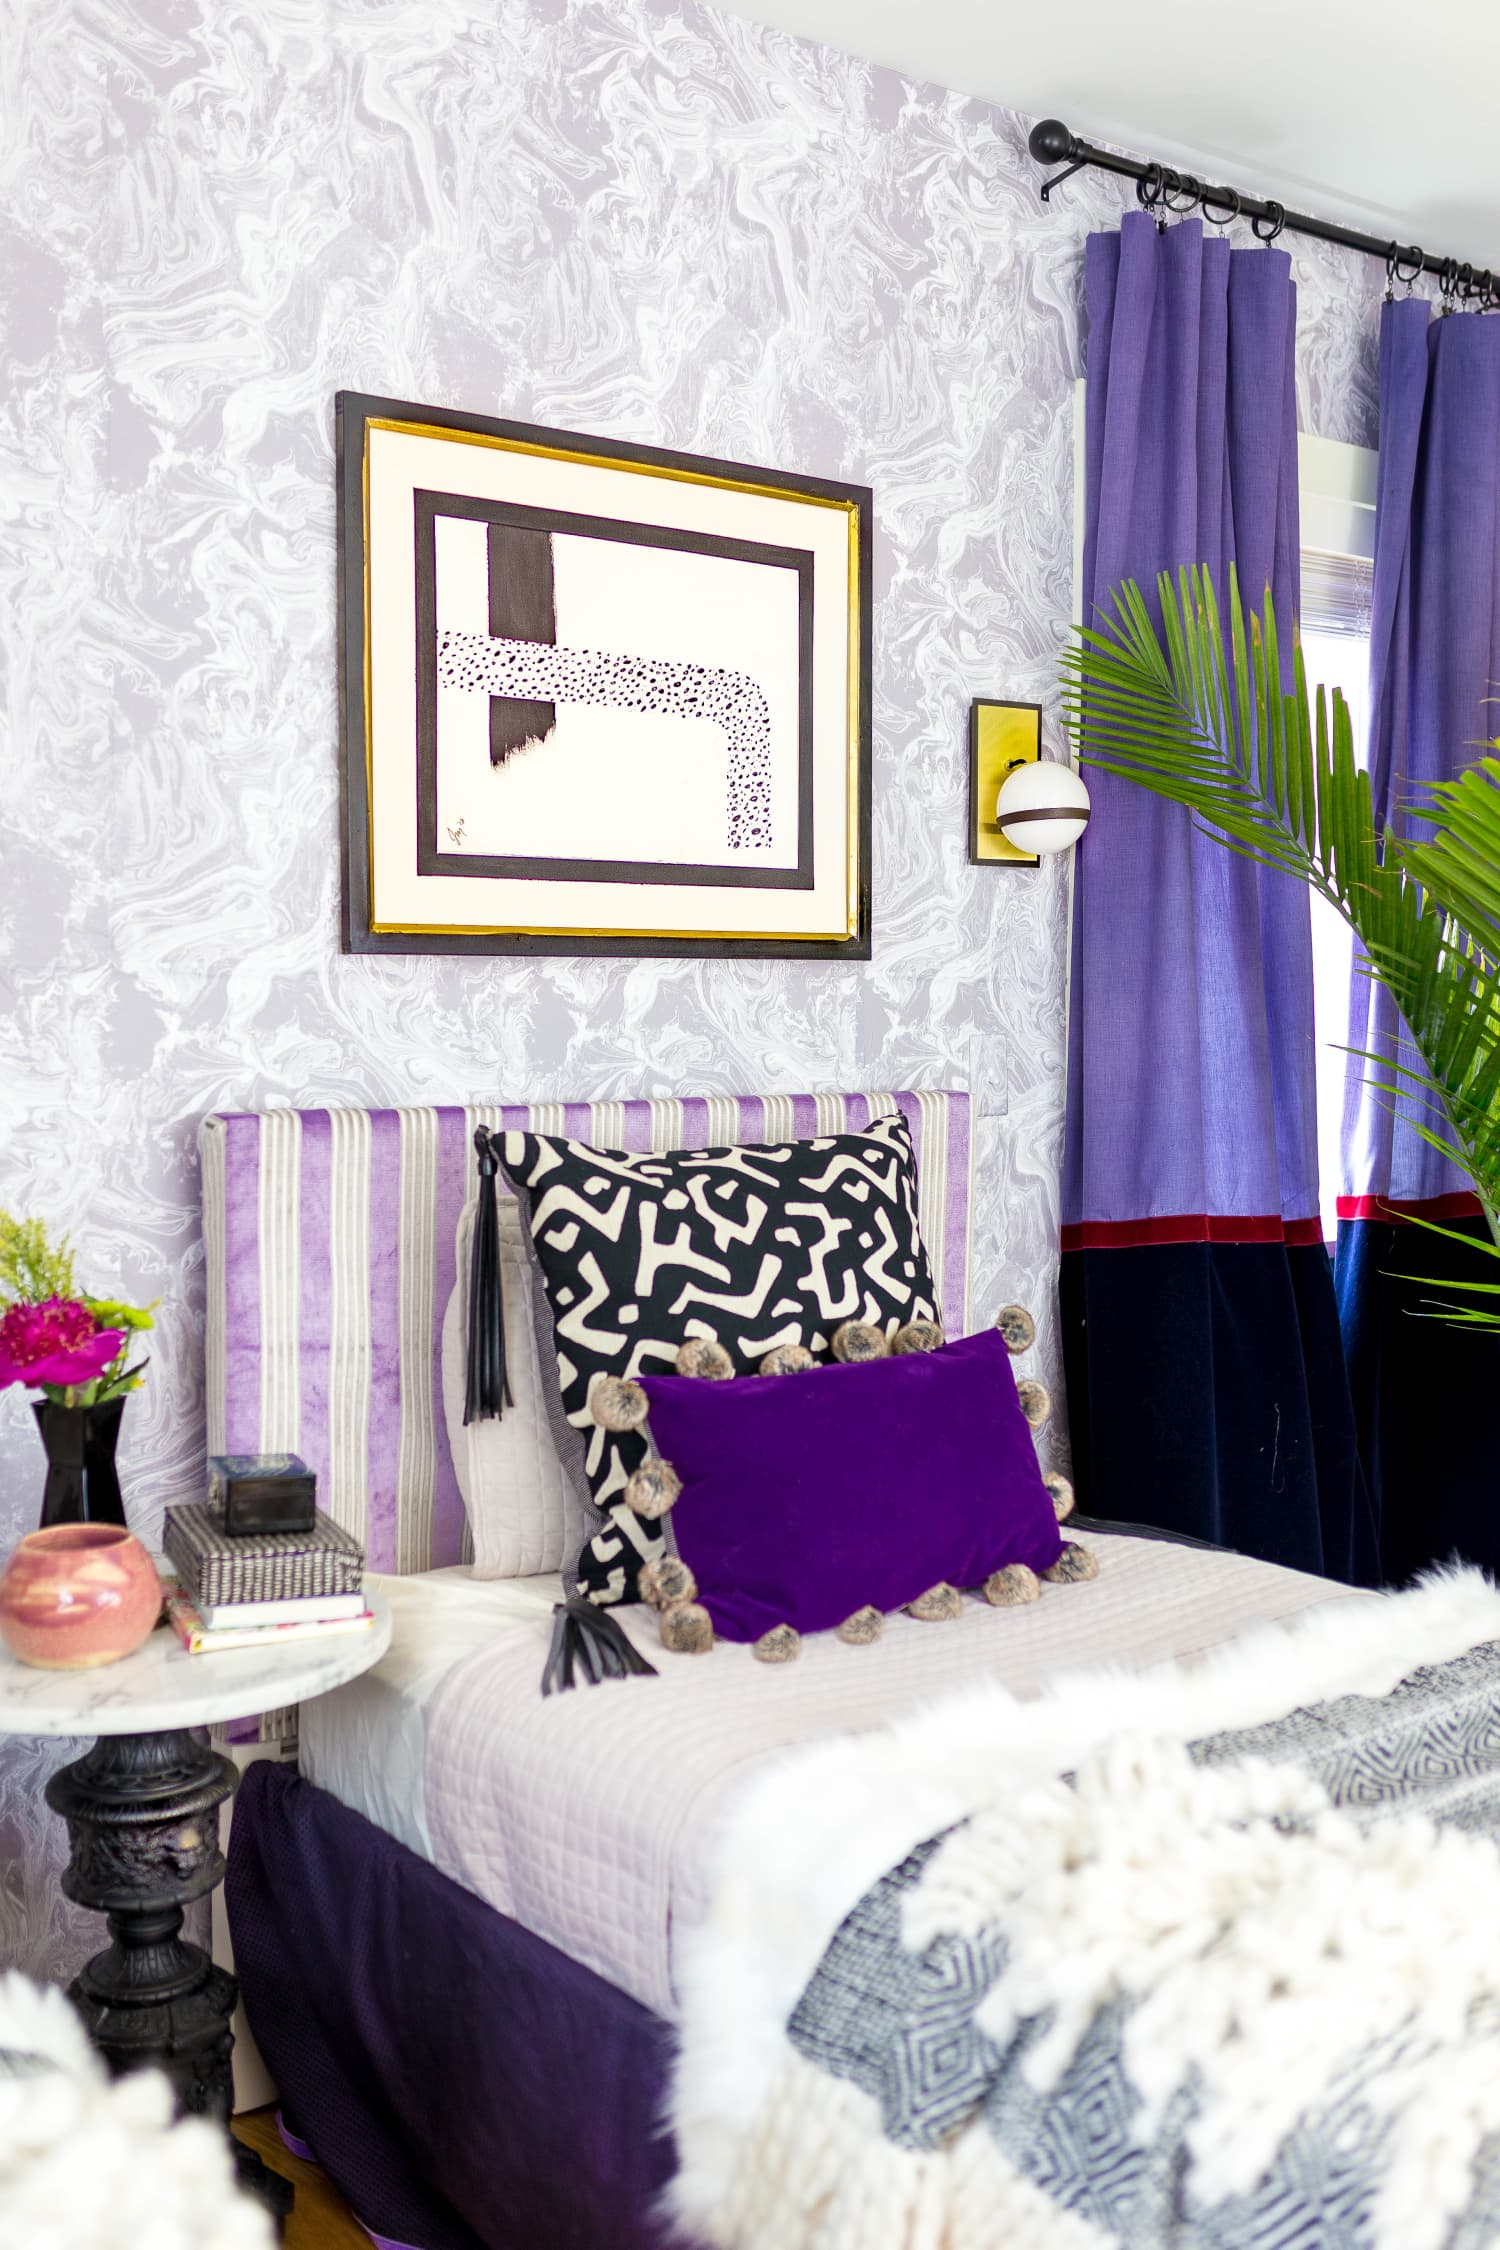 It's Official: Theses are the Best Colors to Use With Purple